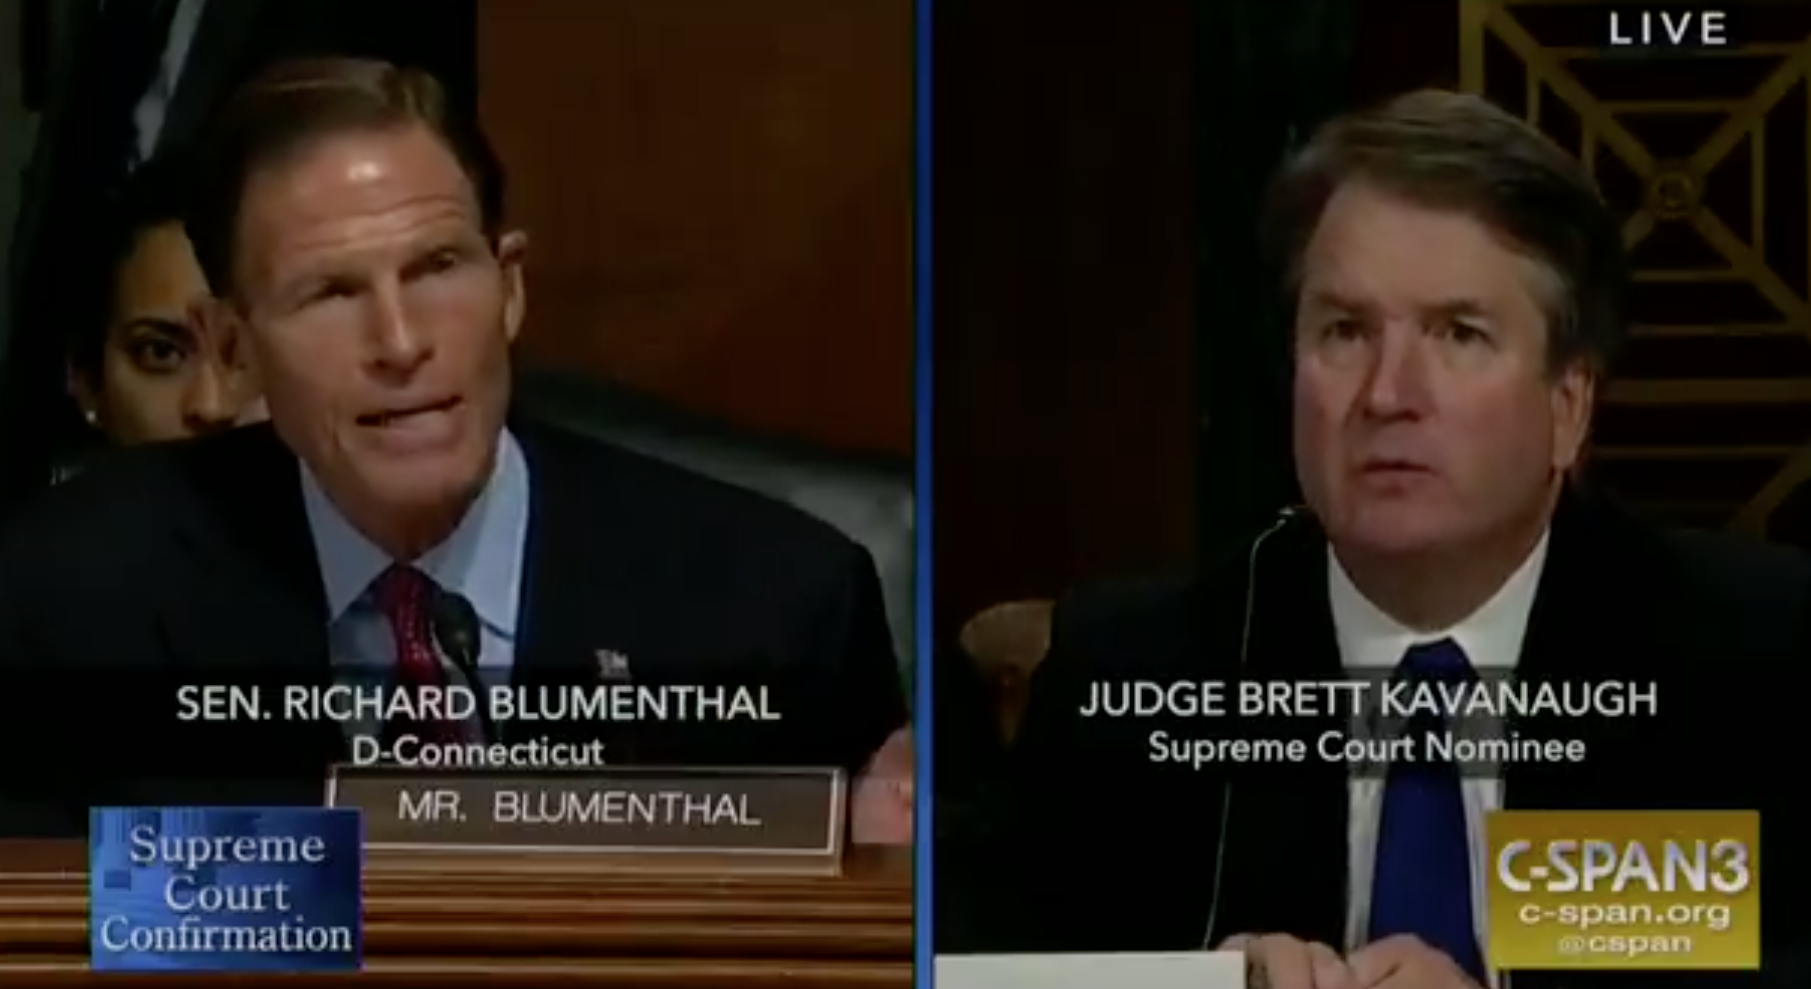 Senate Judiciary Committee Recommends Brett Kavanaugh to Supreme Court